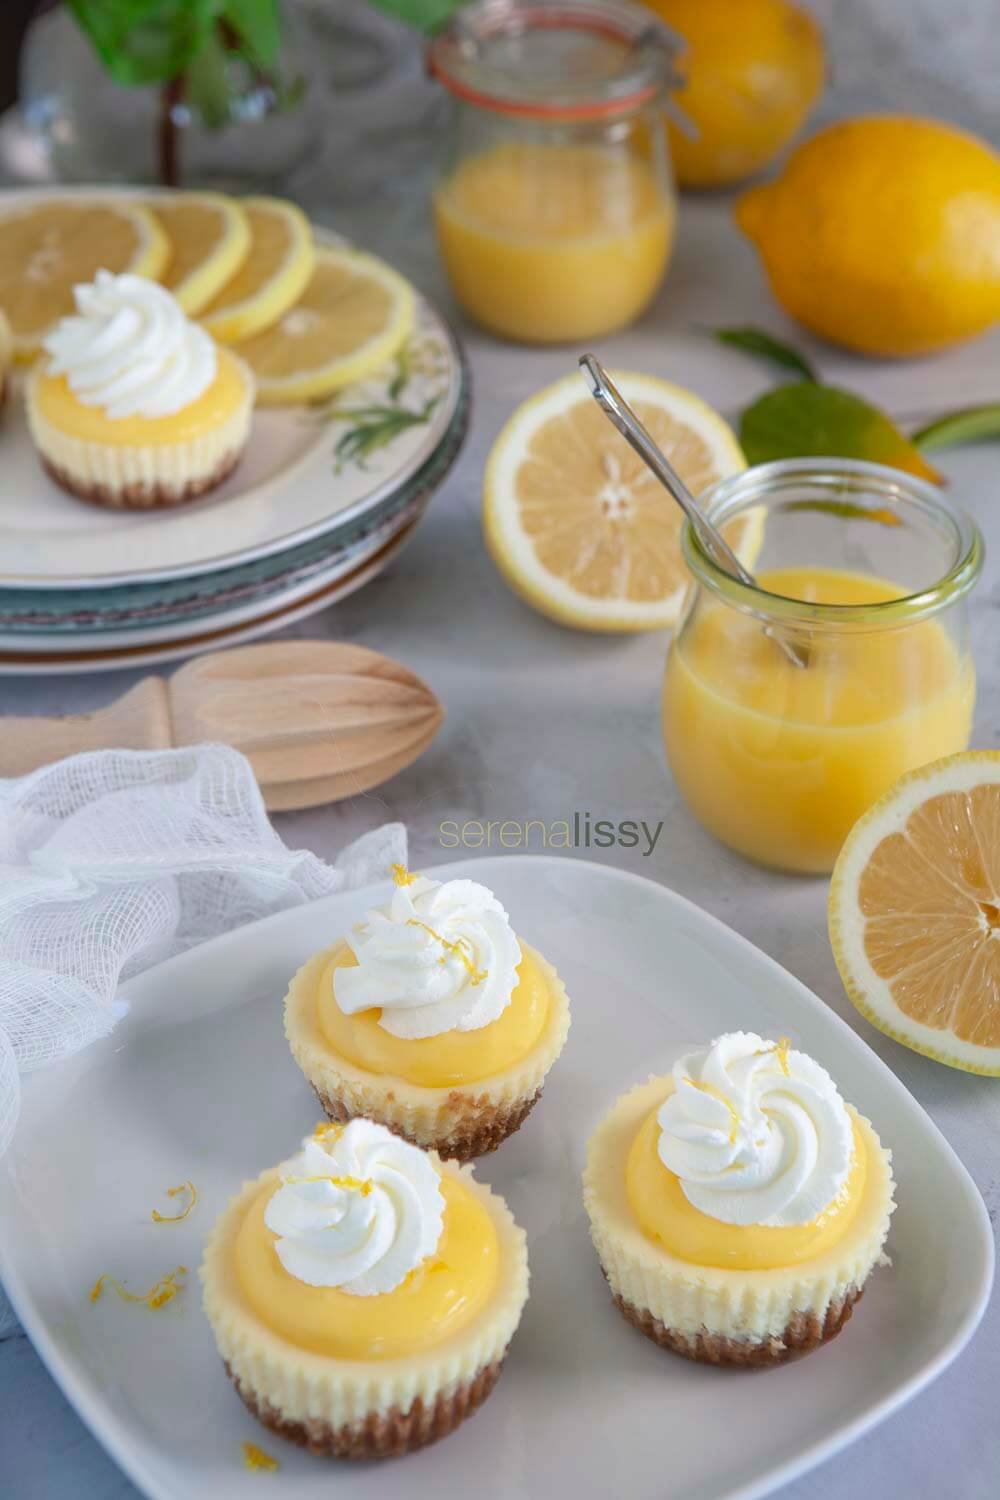 Lemon Cheesecake Bites on plate